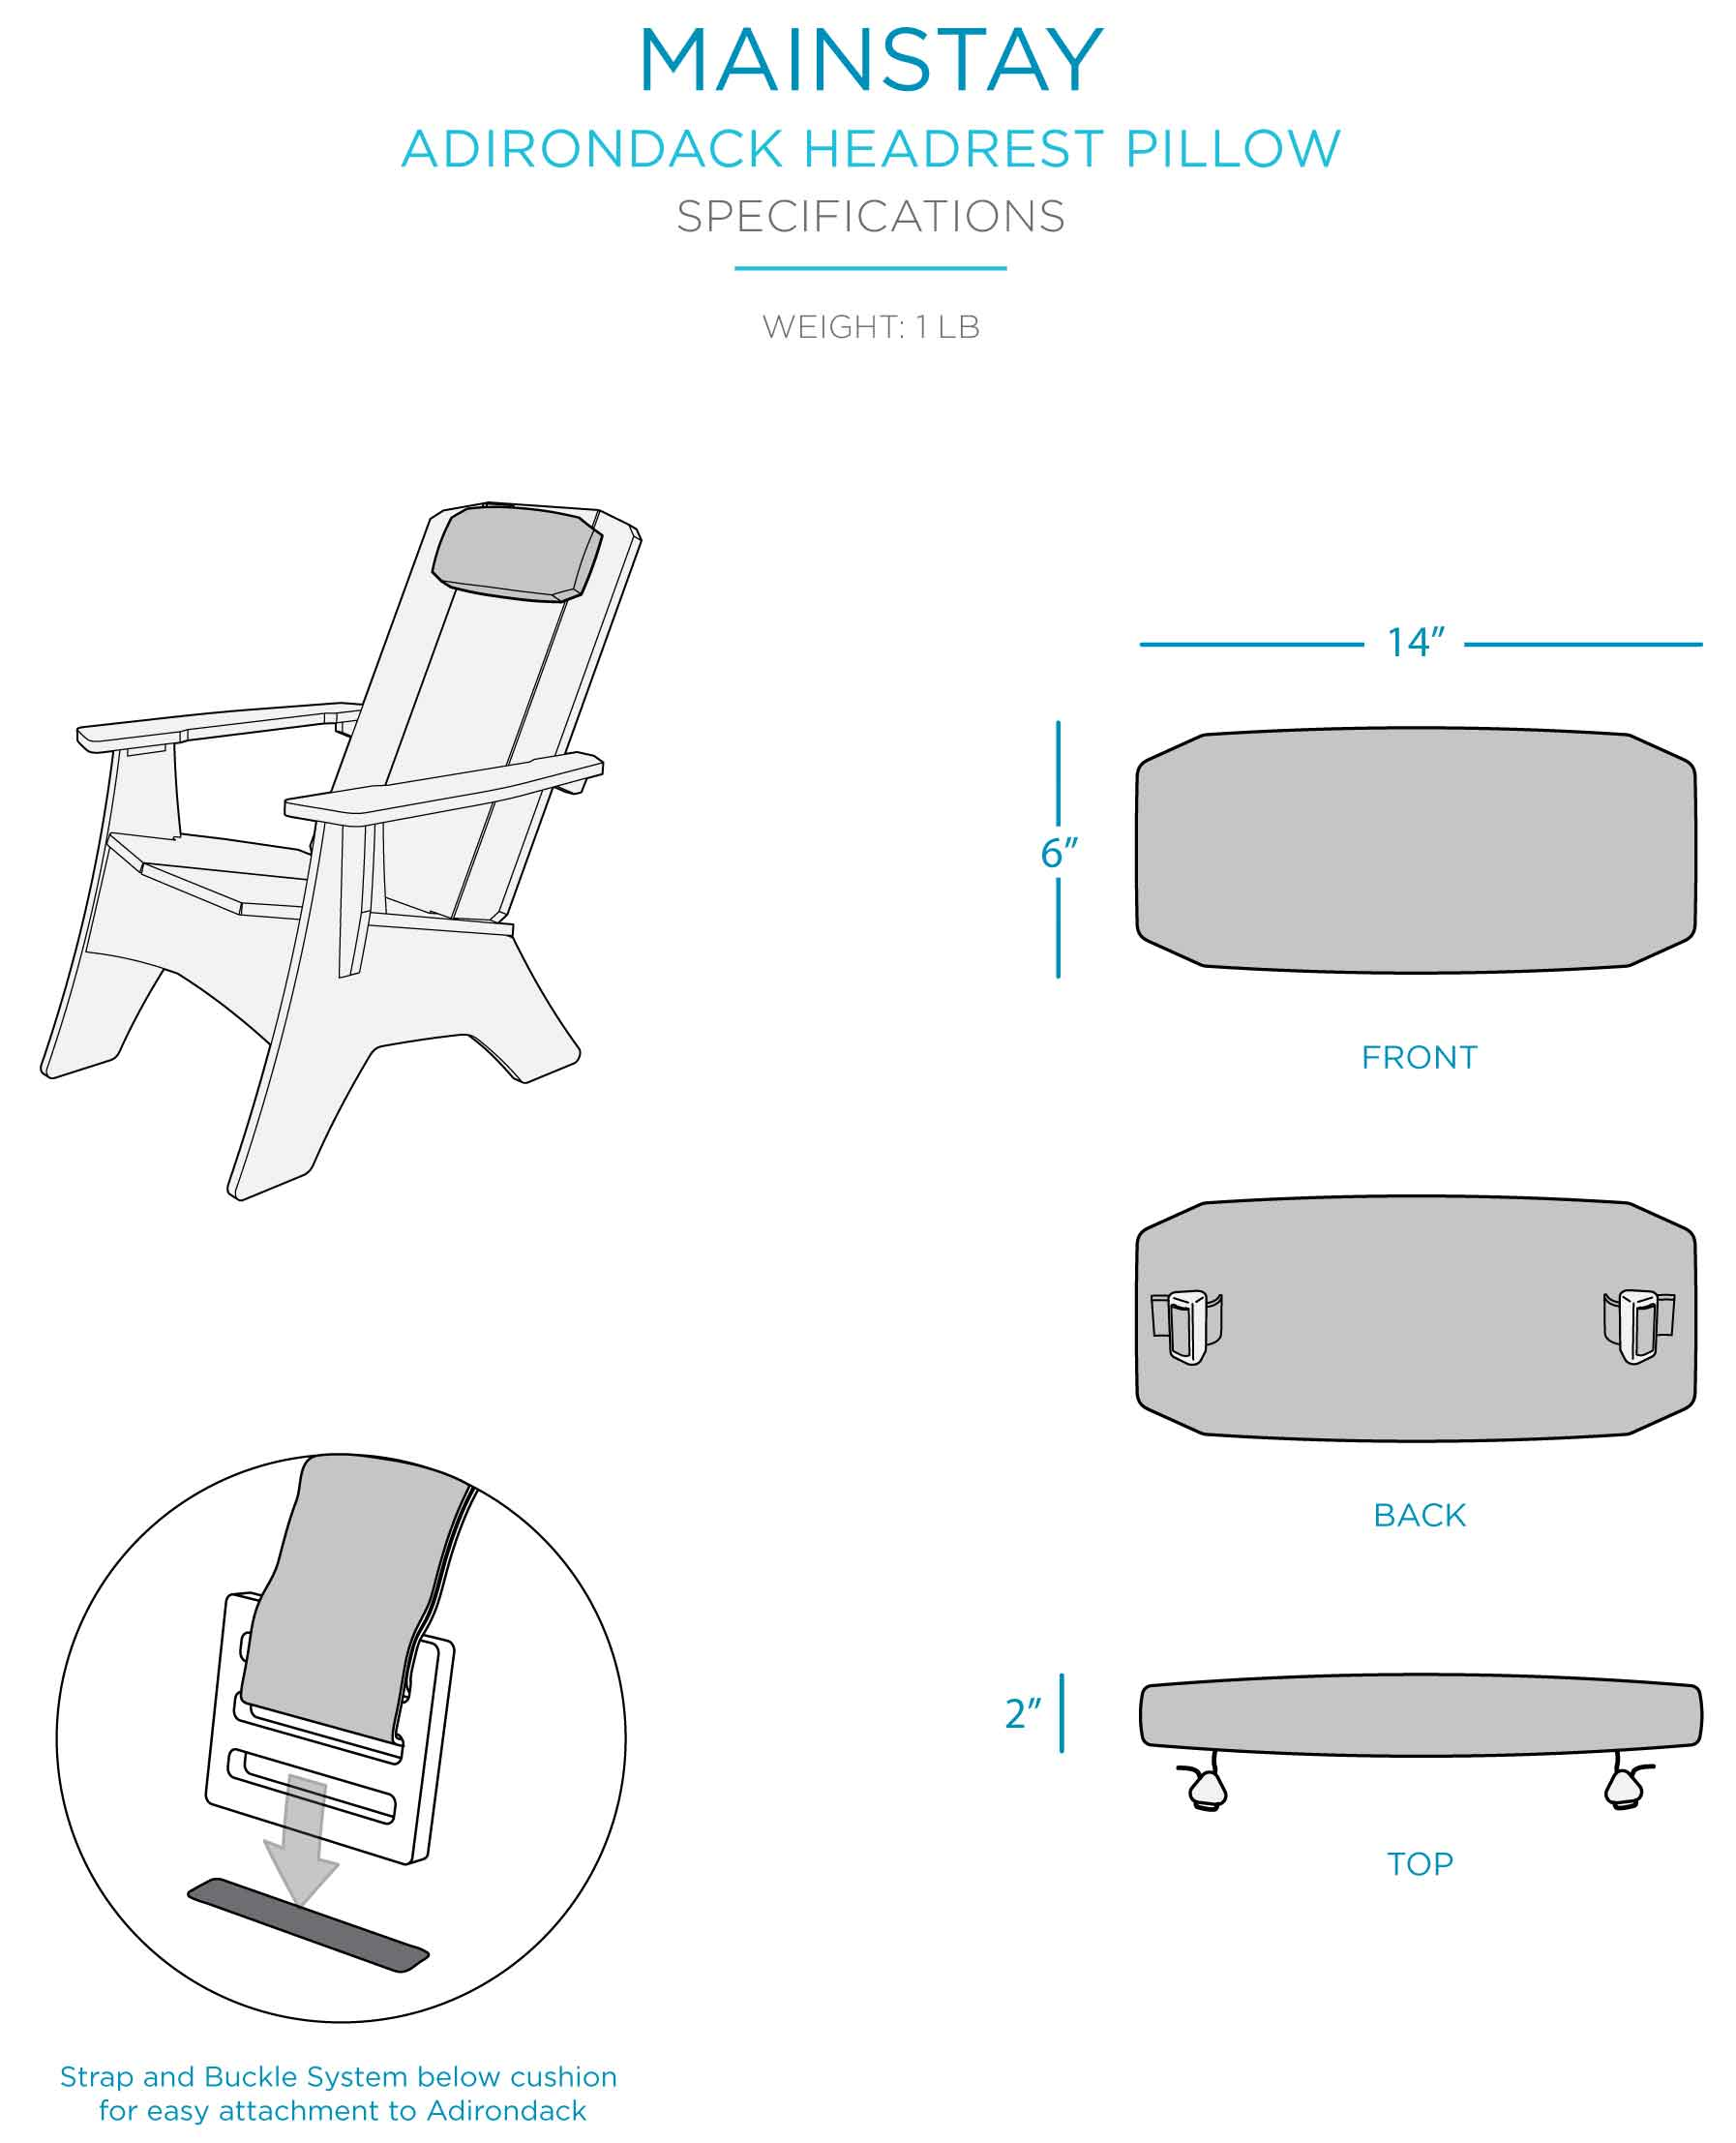 mainstay-adirondack-headrest-pillow-specifications